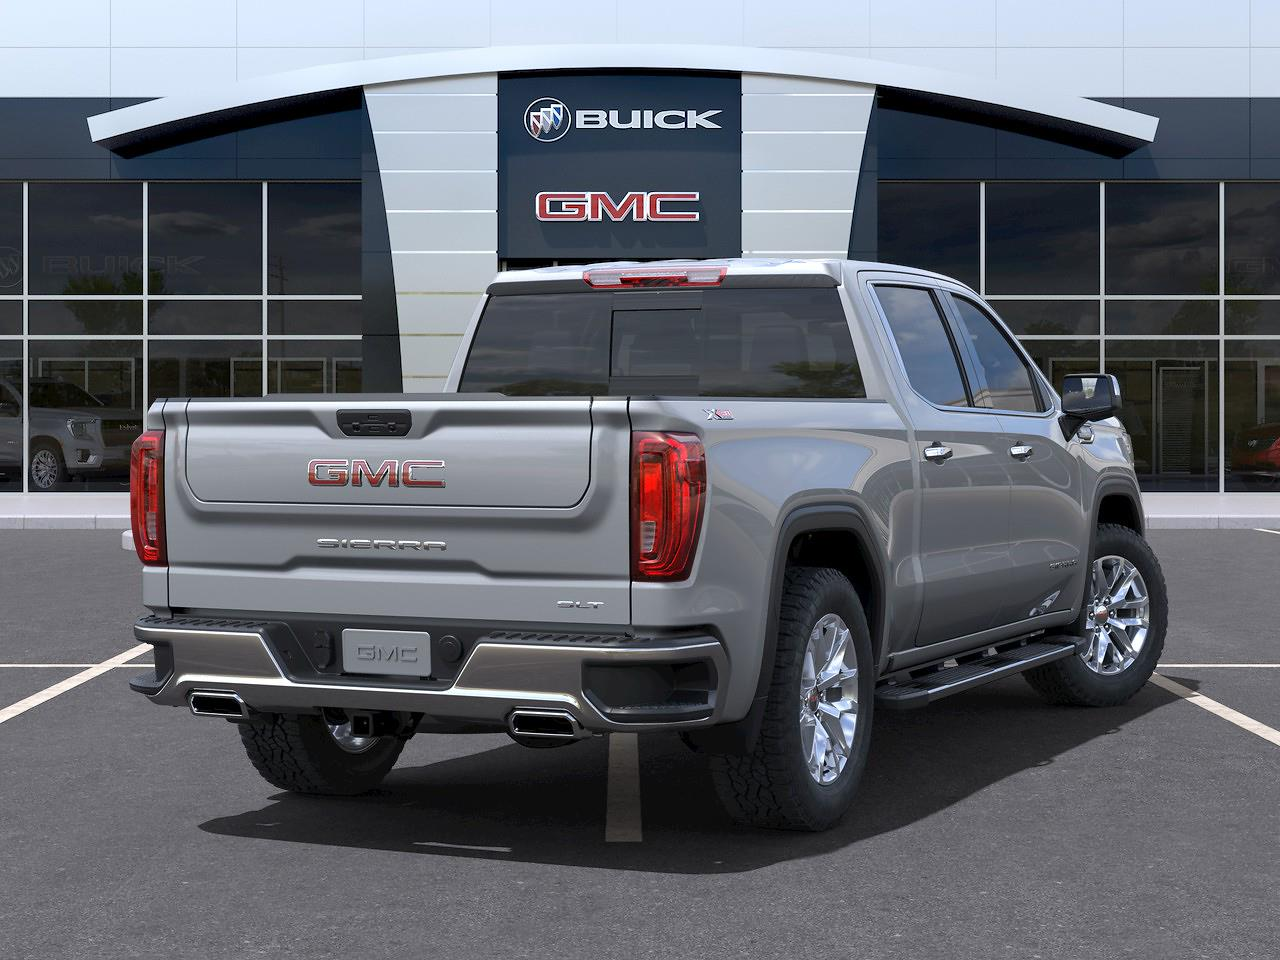 2021 GMC Sierra 1500 Crew Cab 4x4, Pickup #23638 - photo 2